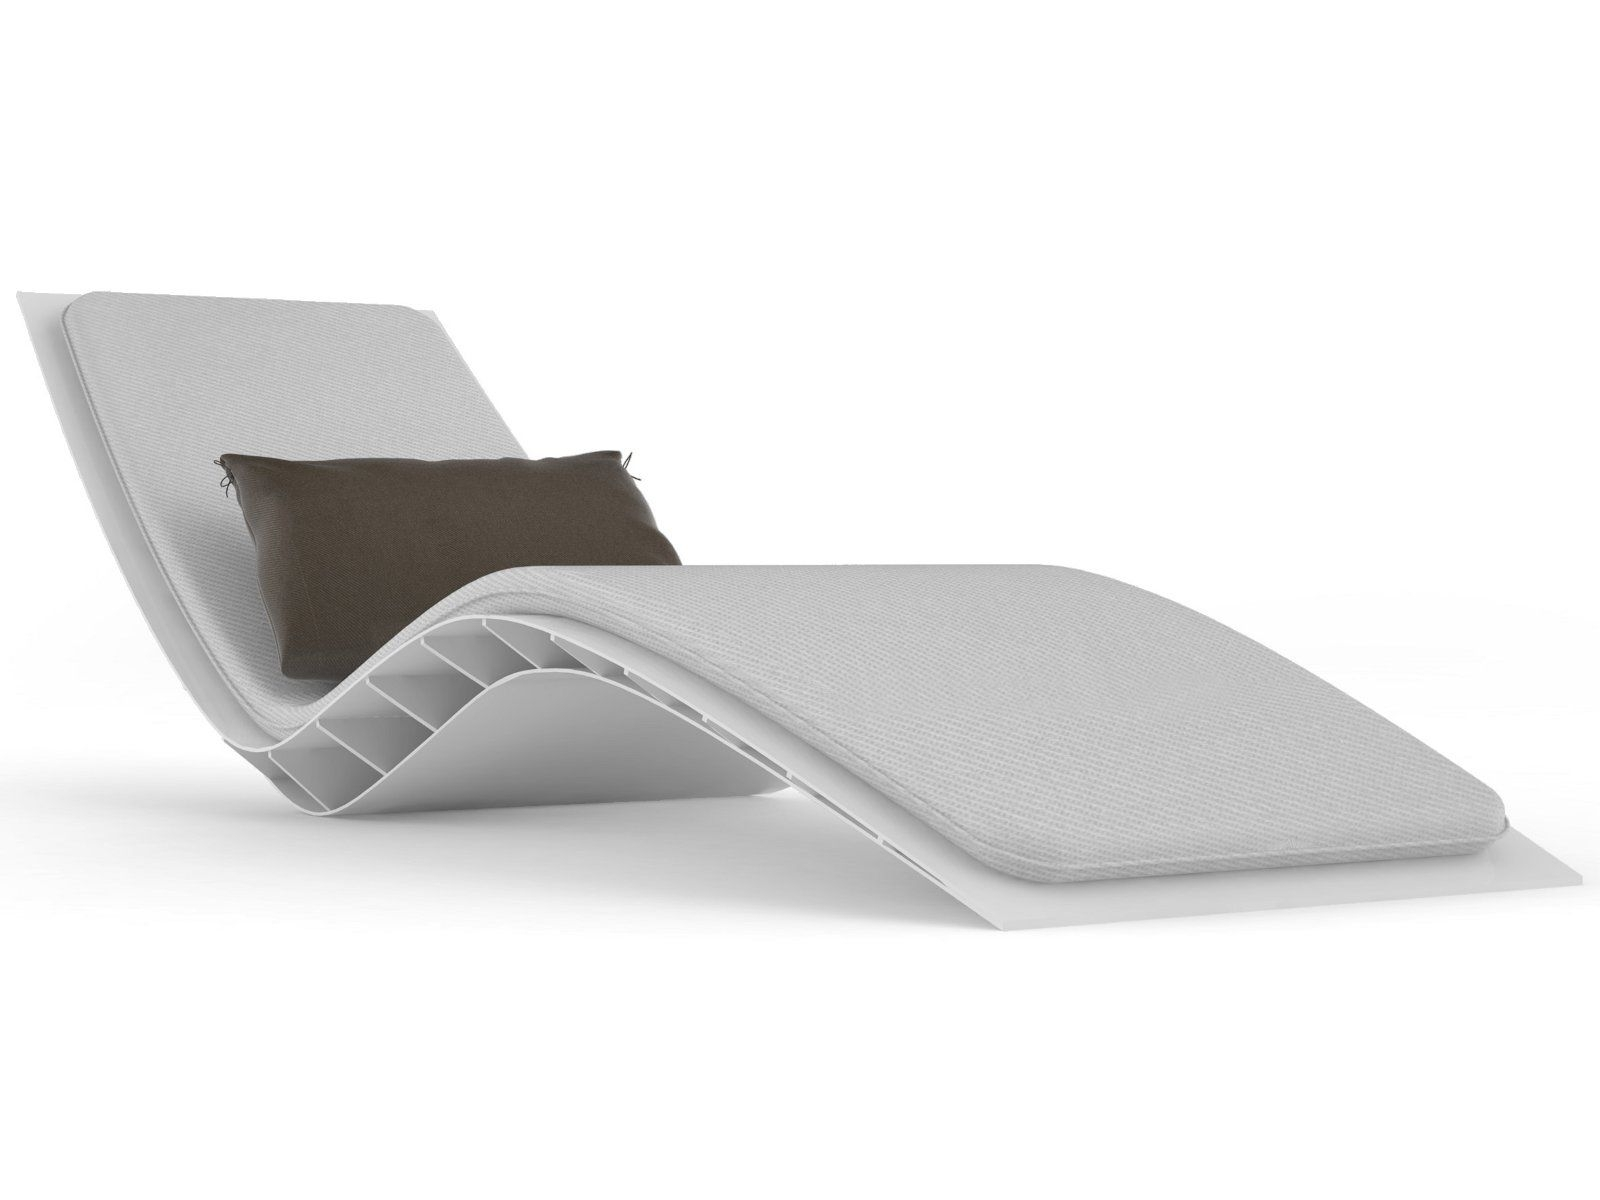 Contemporary Outdoor Chaise Lounge Chairs Intended For 2017 Awesome Modern Chaise Lounge Chair Cushions For Relaxing (View 2 of 15)